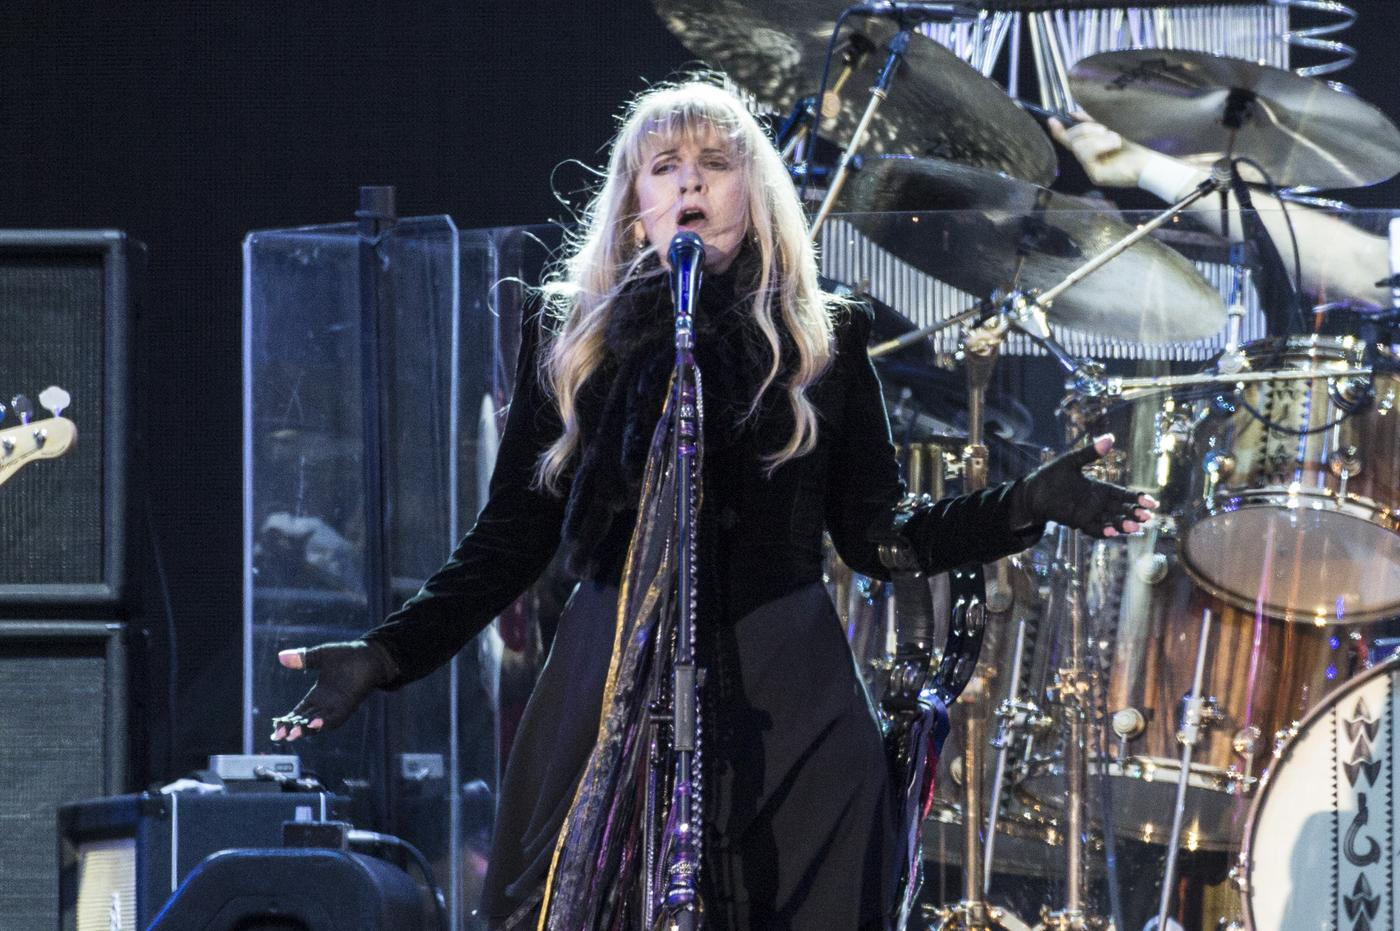 Everyone got very excited when Fleetwood Mac performed at the Isle of Wight Festival